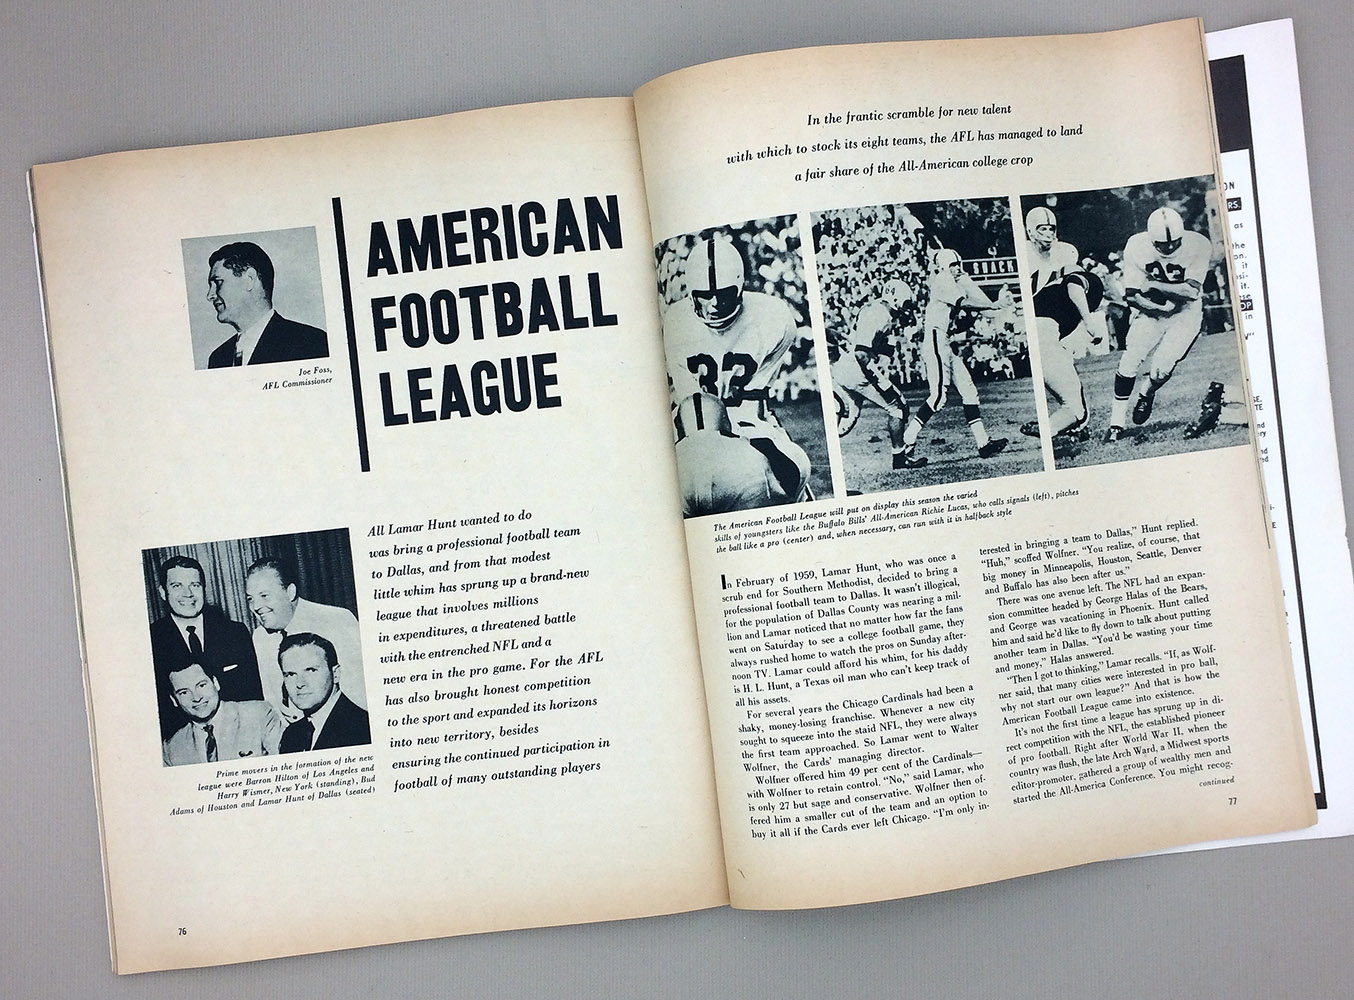 football_nfl_afl_1960_pro_football_magazine_F.jpg